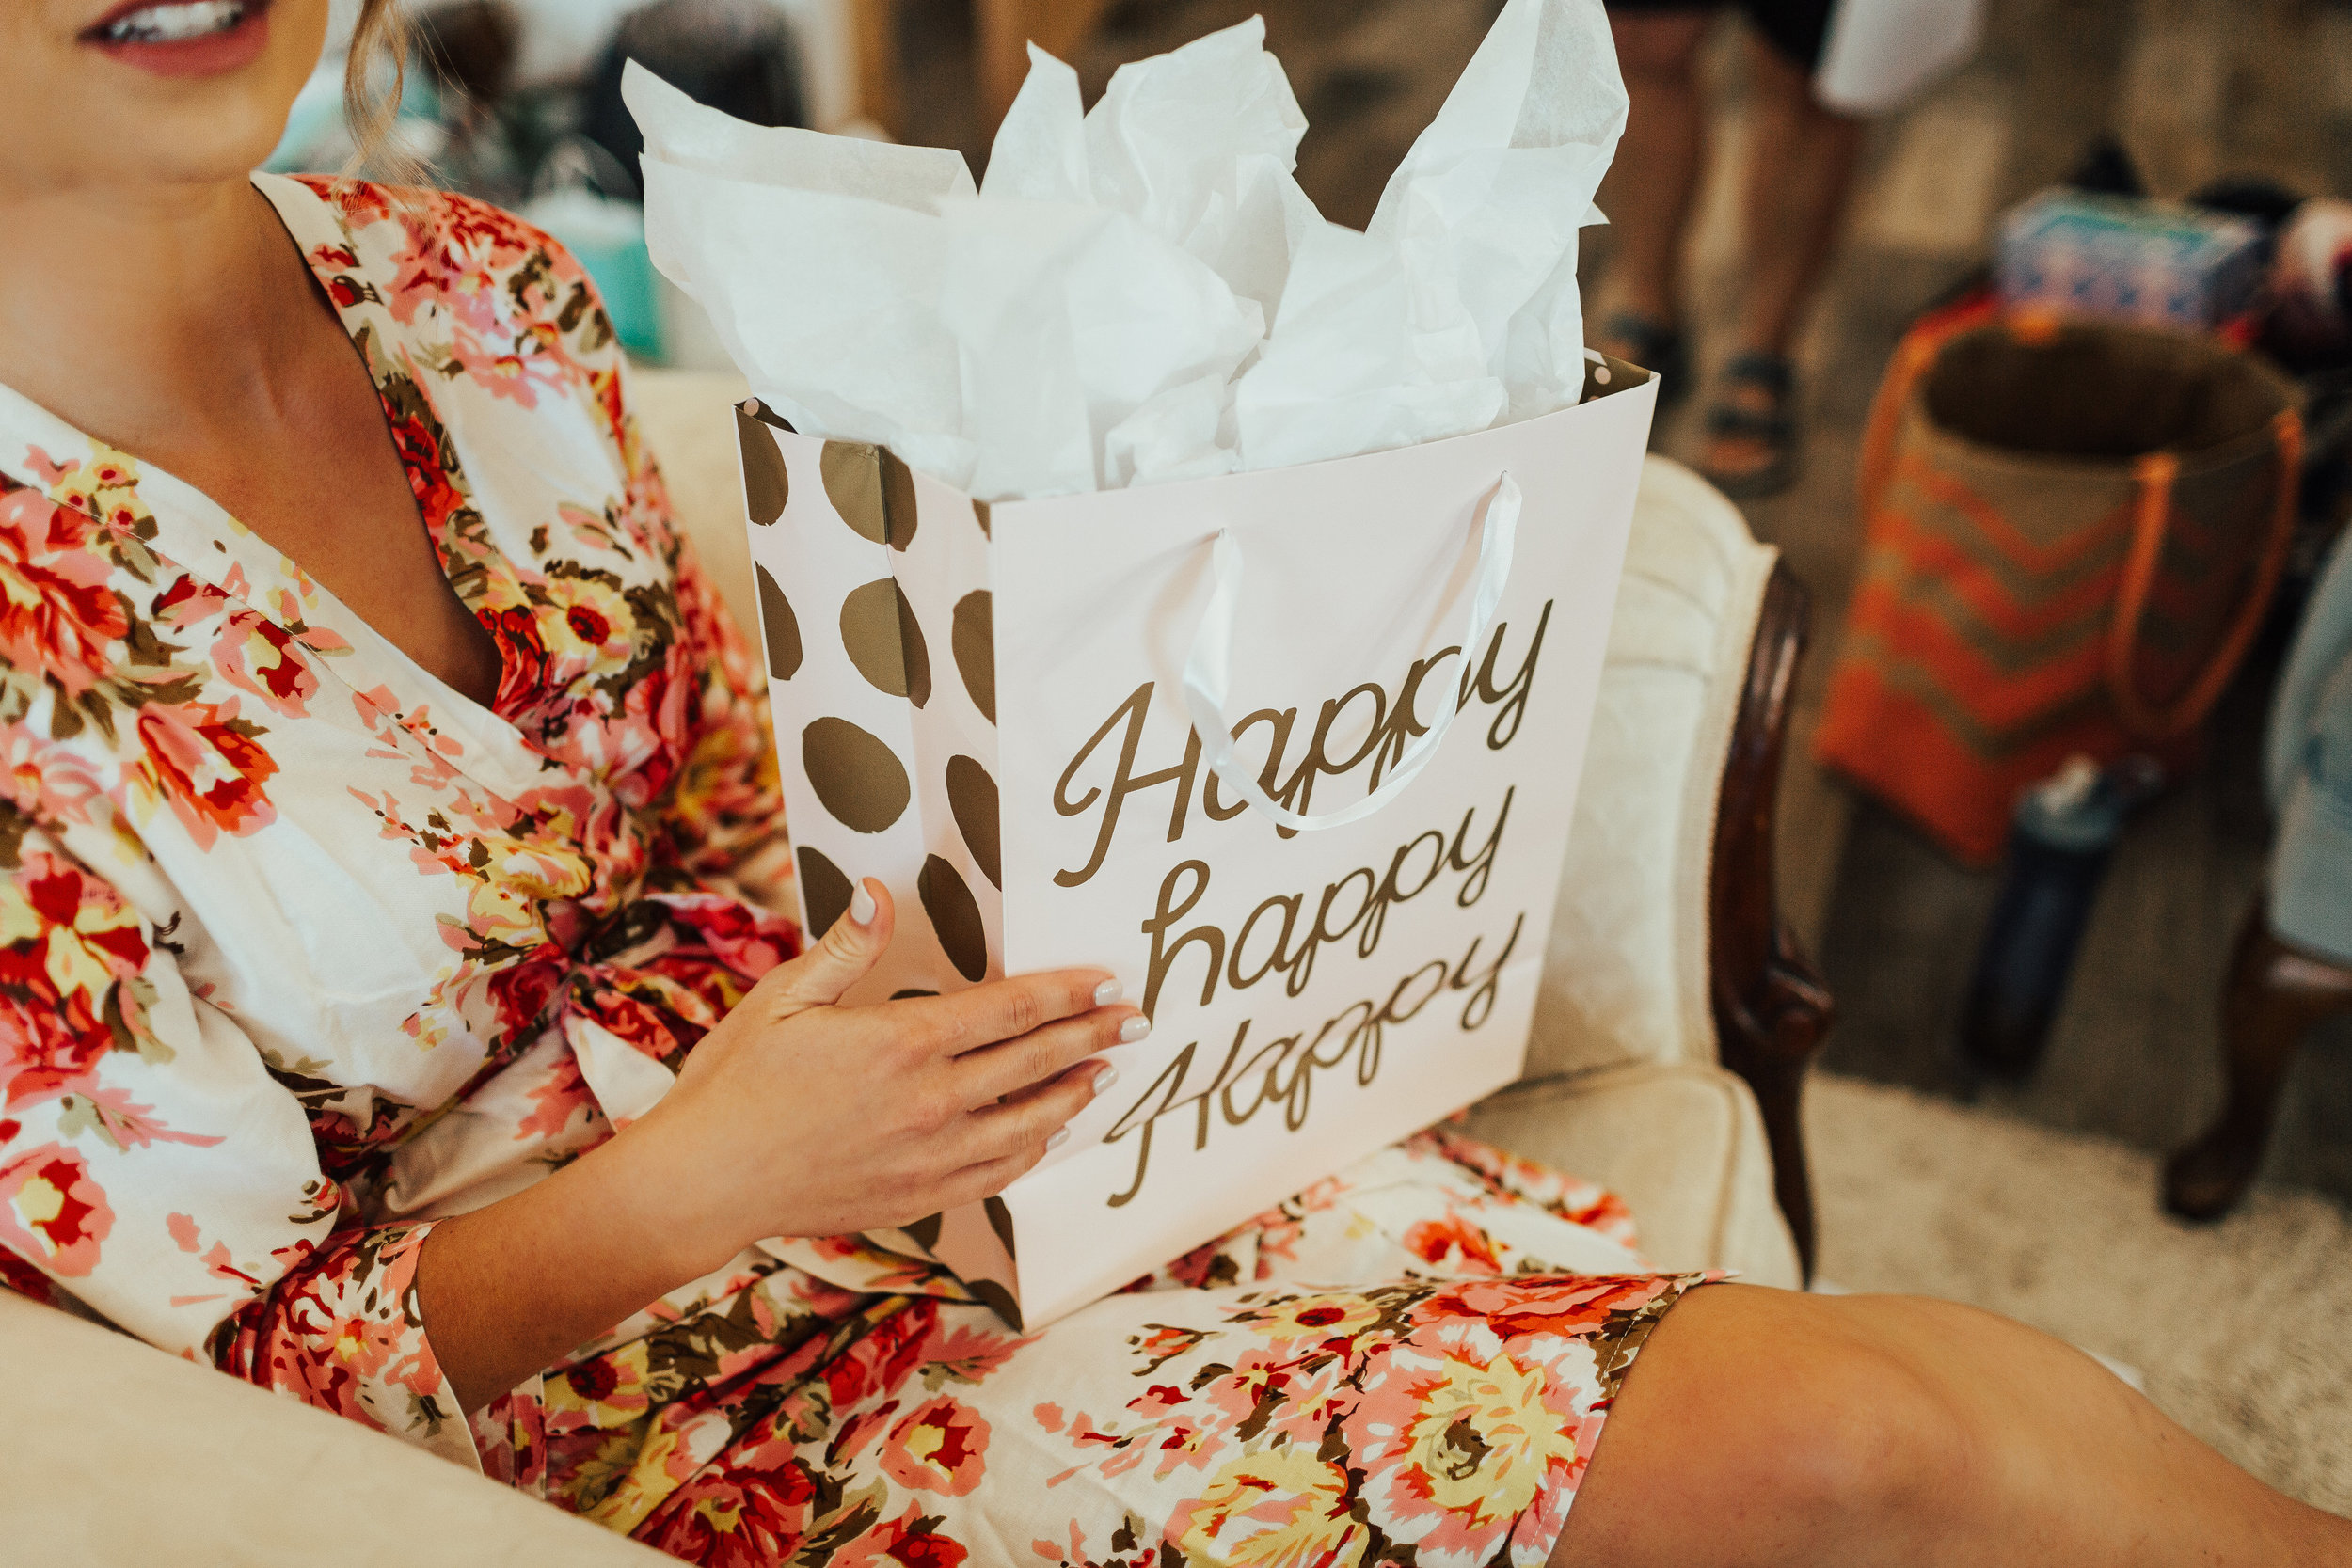 Janelle Elise | Megan + Corey | Furber Farm | Sixpence Events | A Vintage Touch Weddings | happy happy happy wedding bag |  bride opens gifts in bridal suite at Furber farms